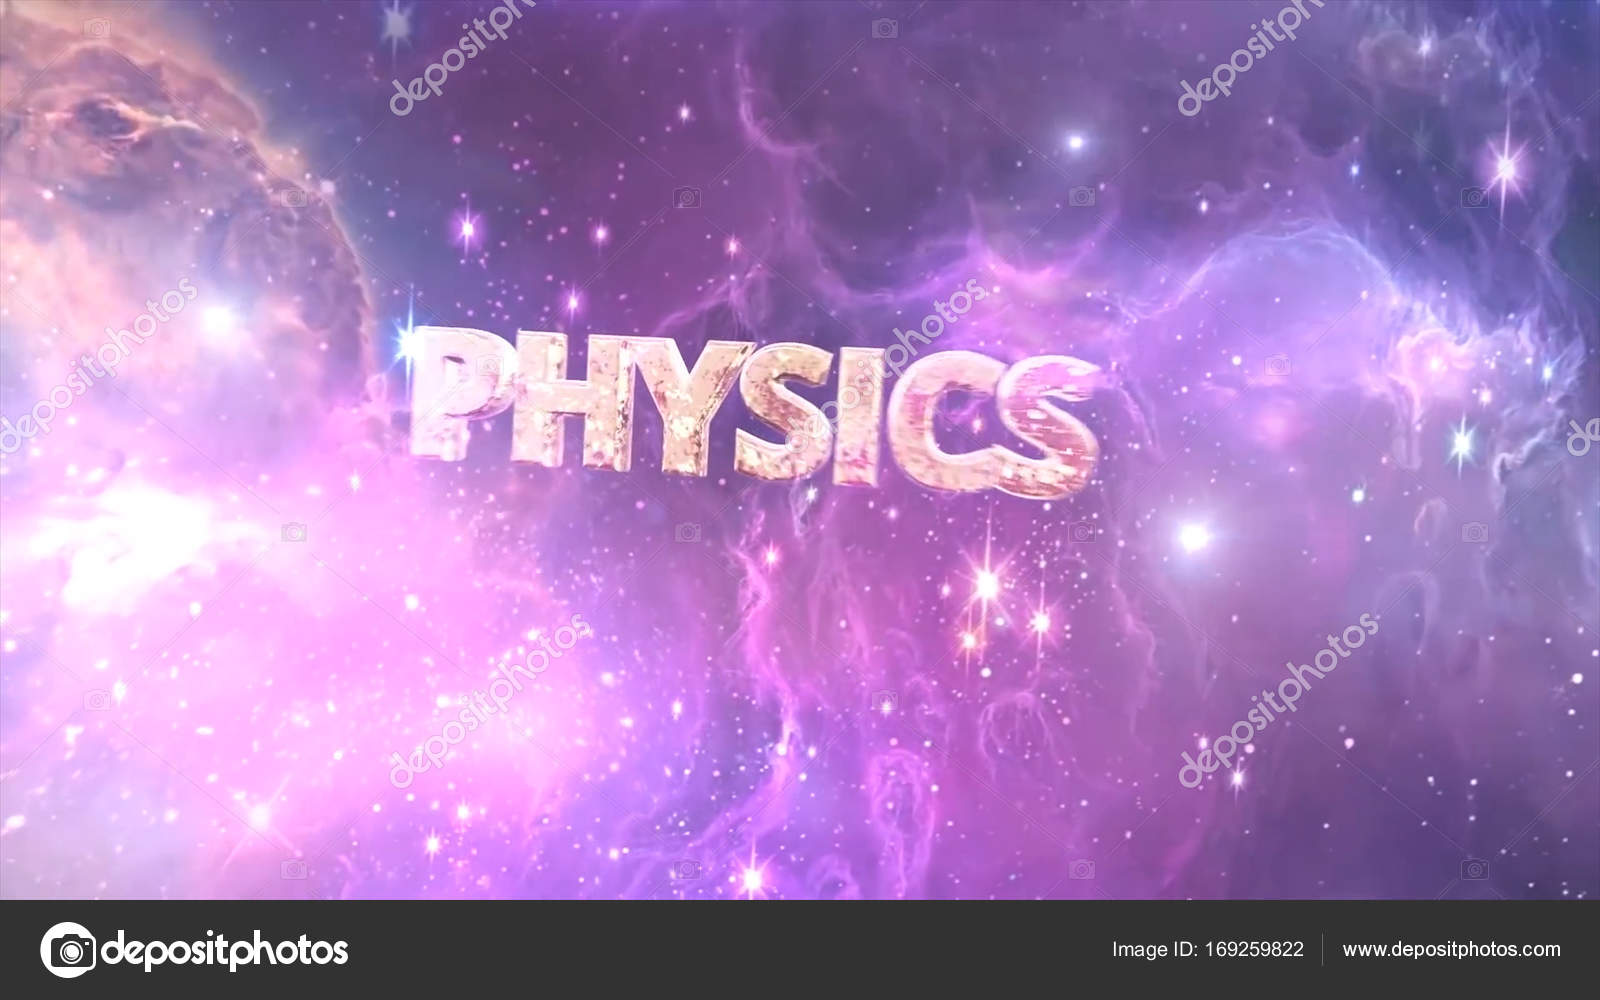 Words electricity, magnetism, optics  Abstract backgrounds